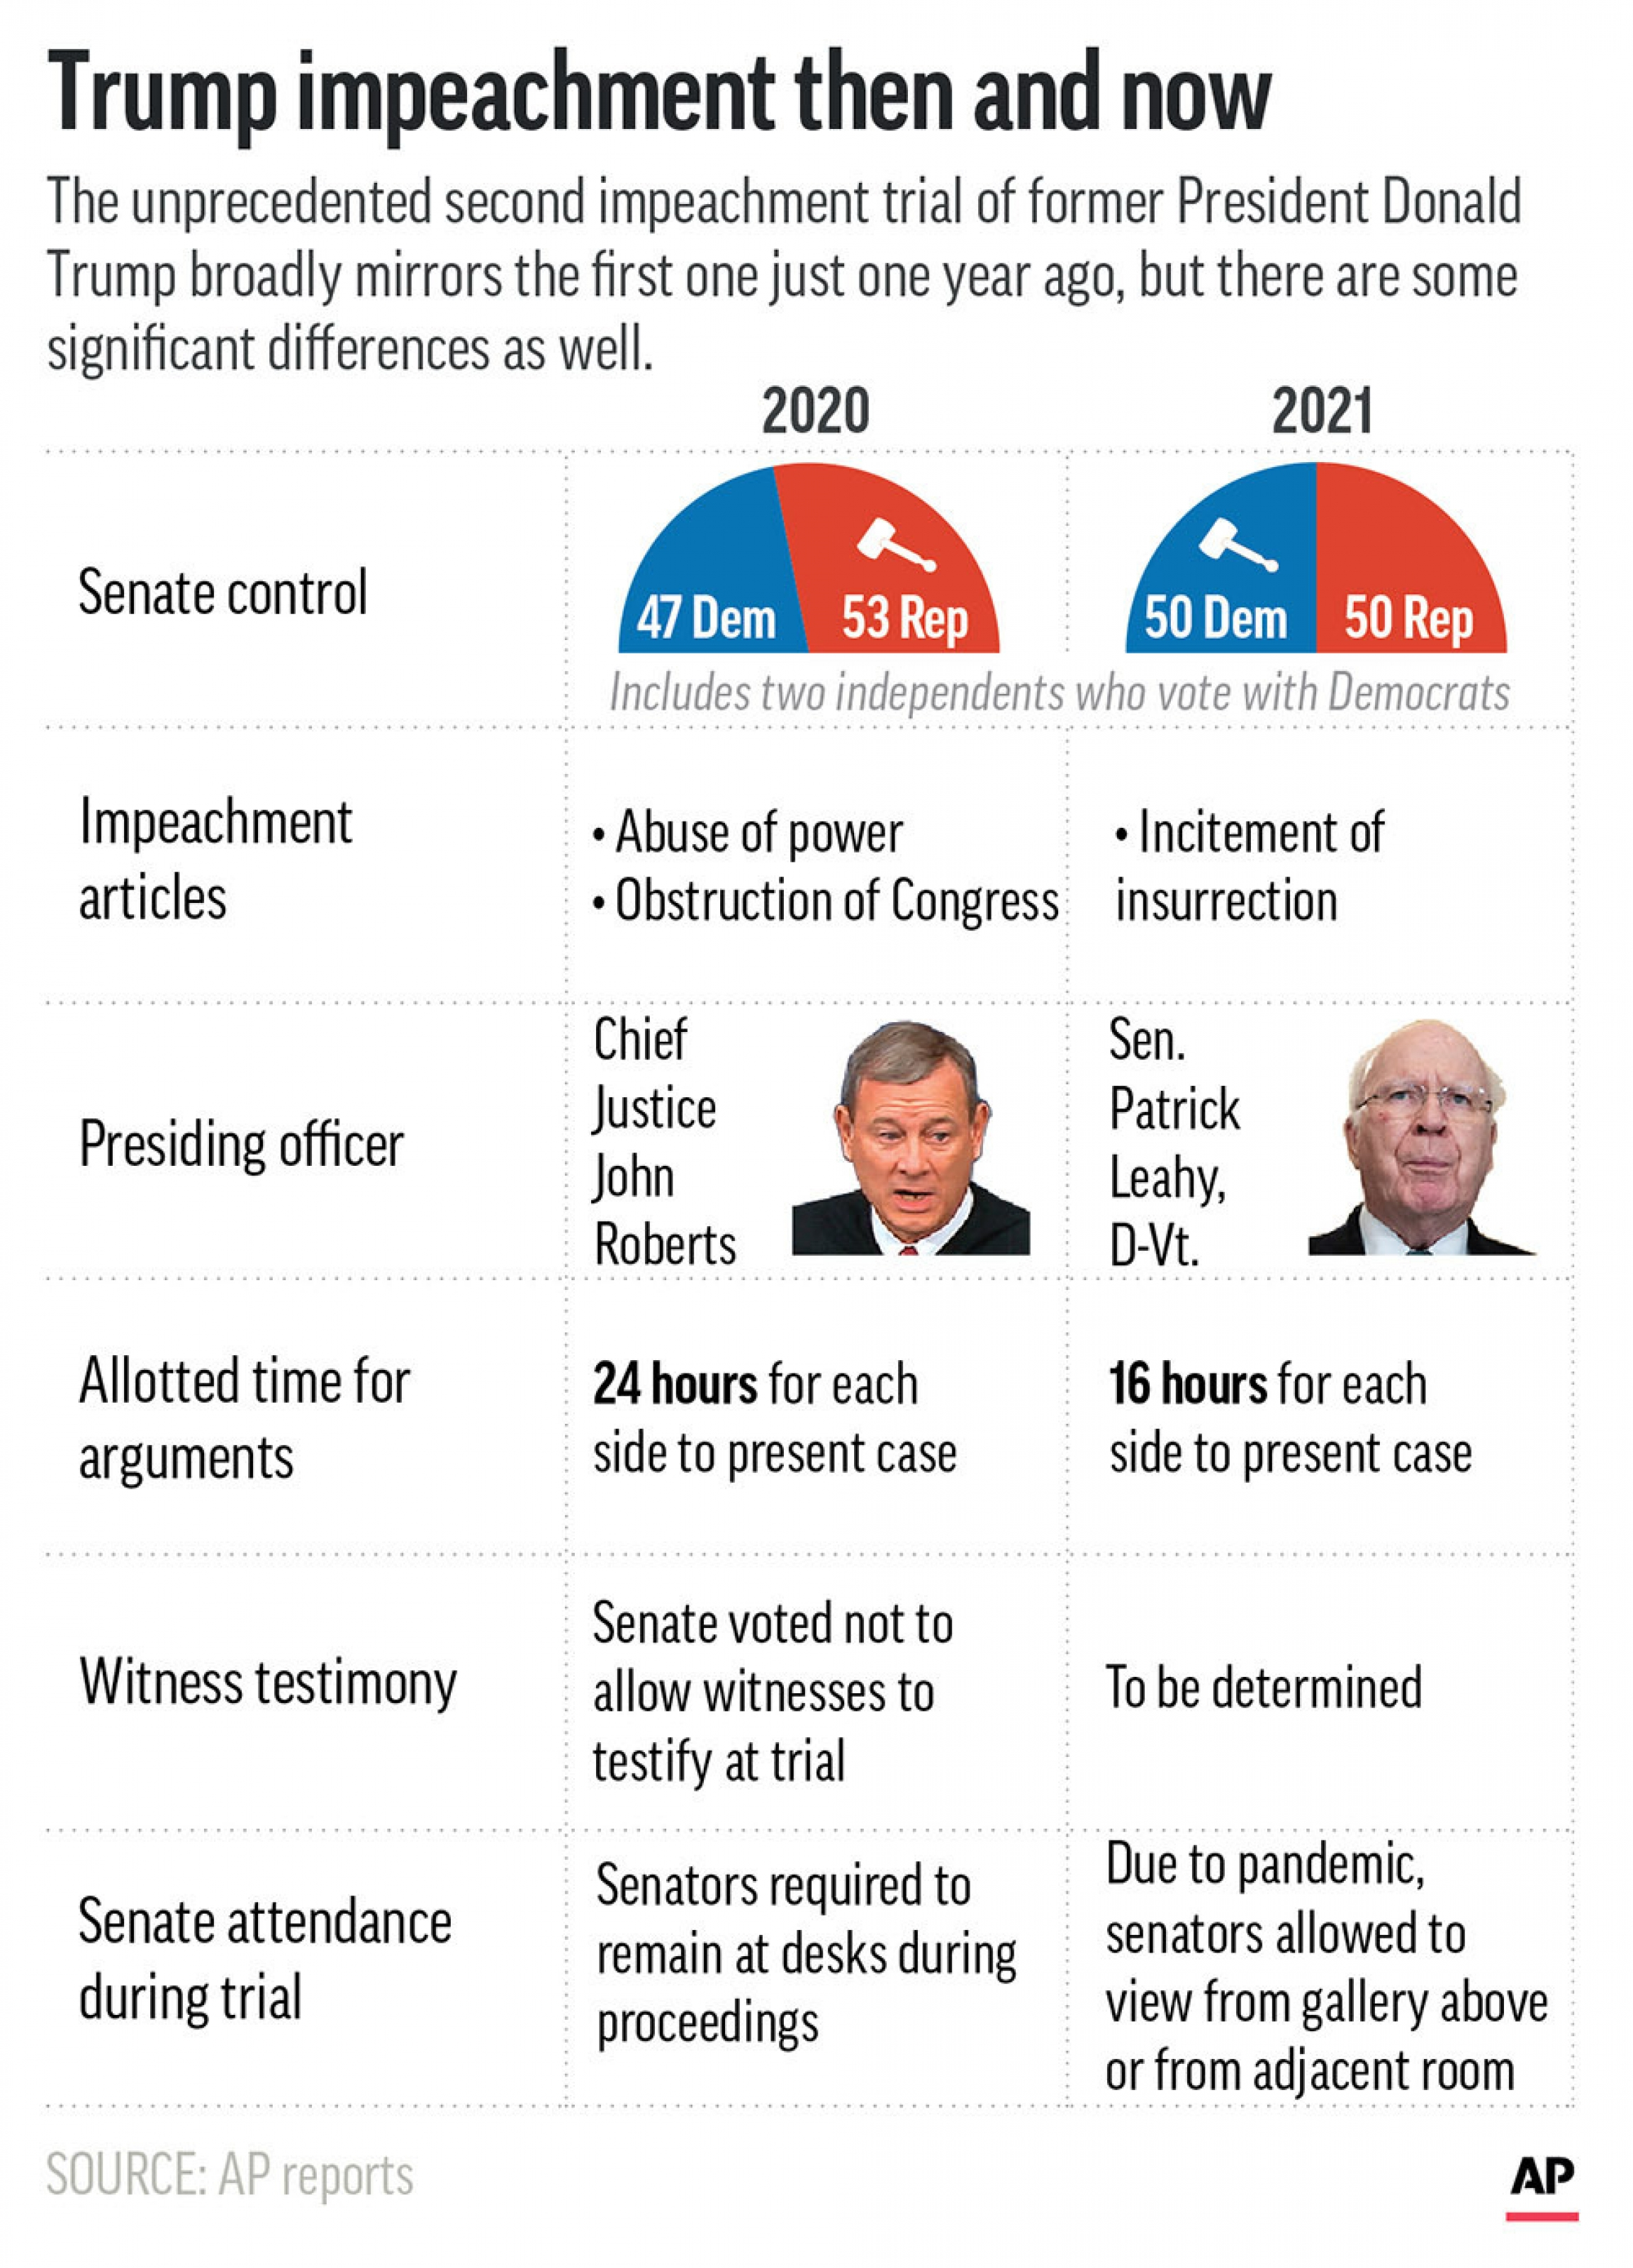 A graphic showing statistics about the Senate composition for Donald Trump's first impeachment in 2020 and in 2021.